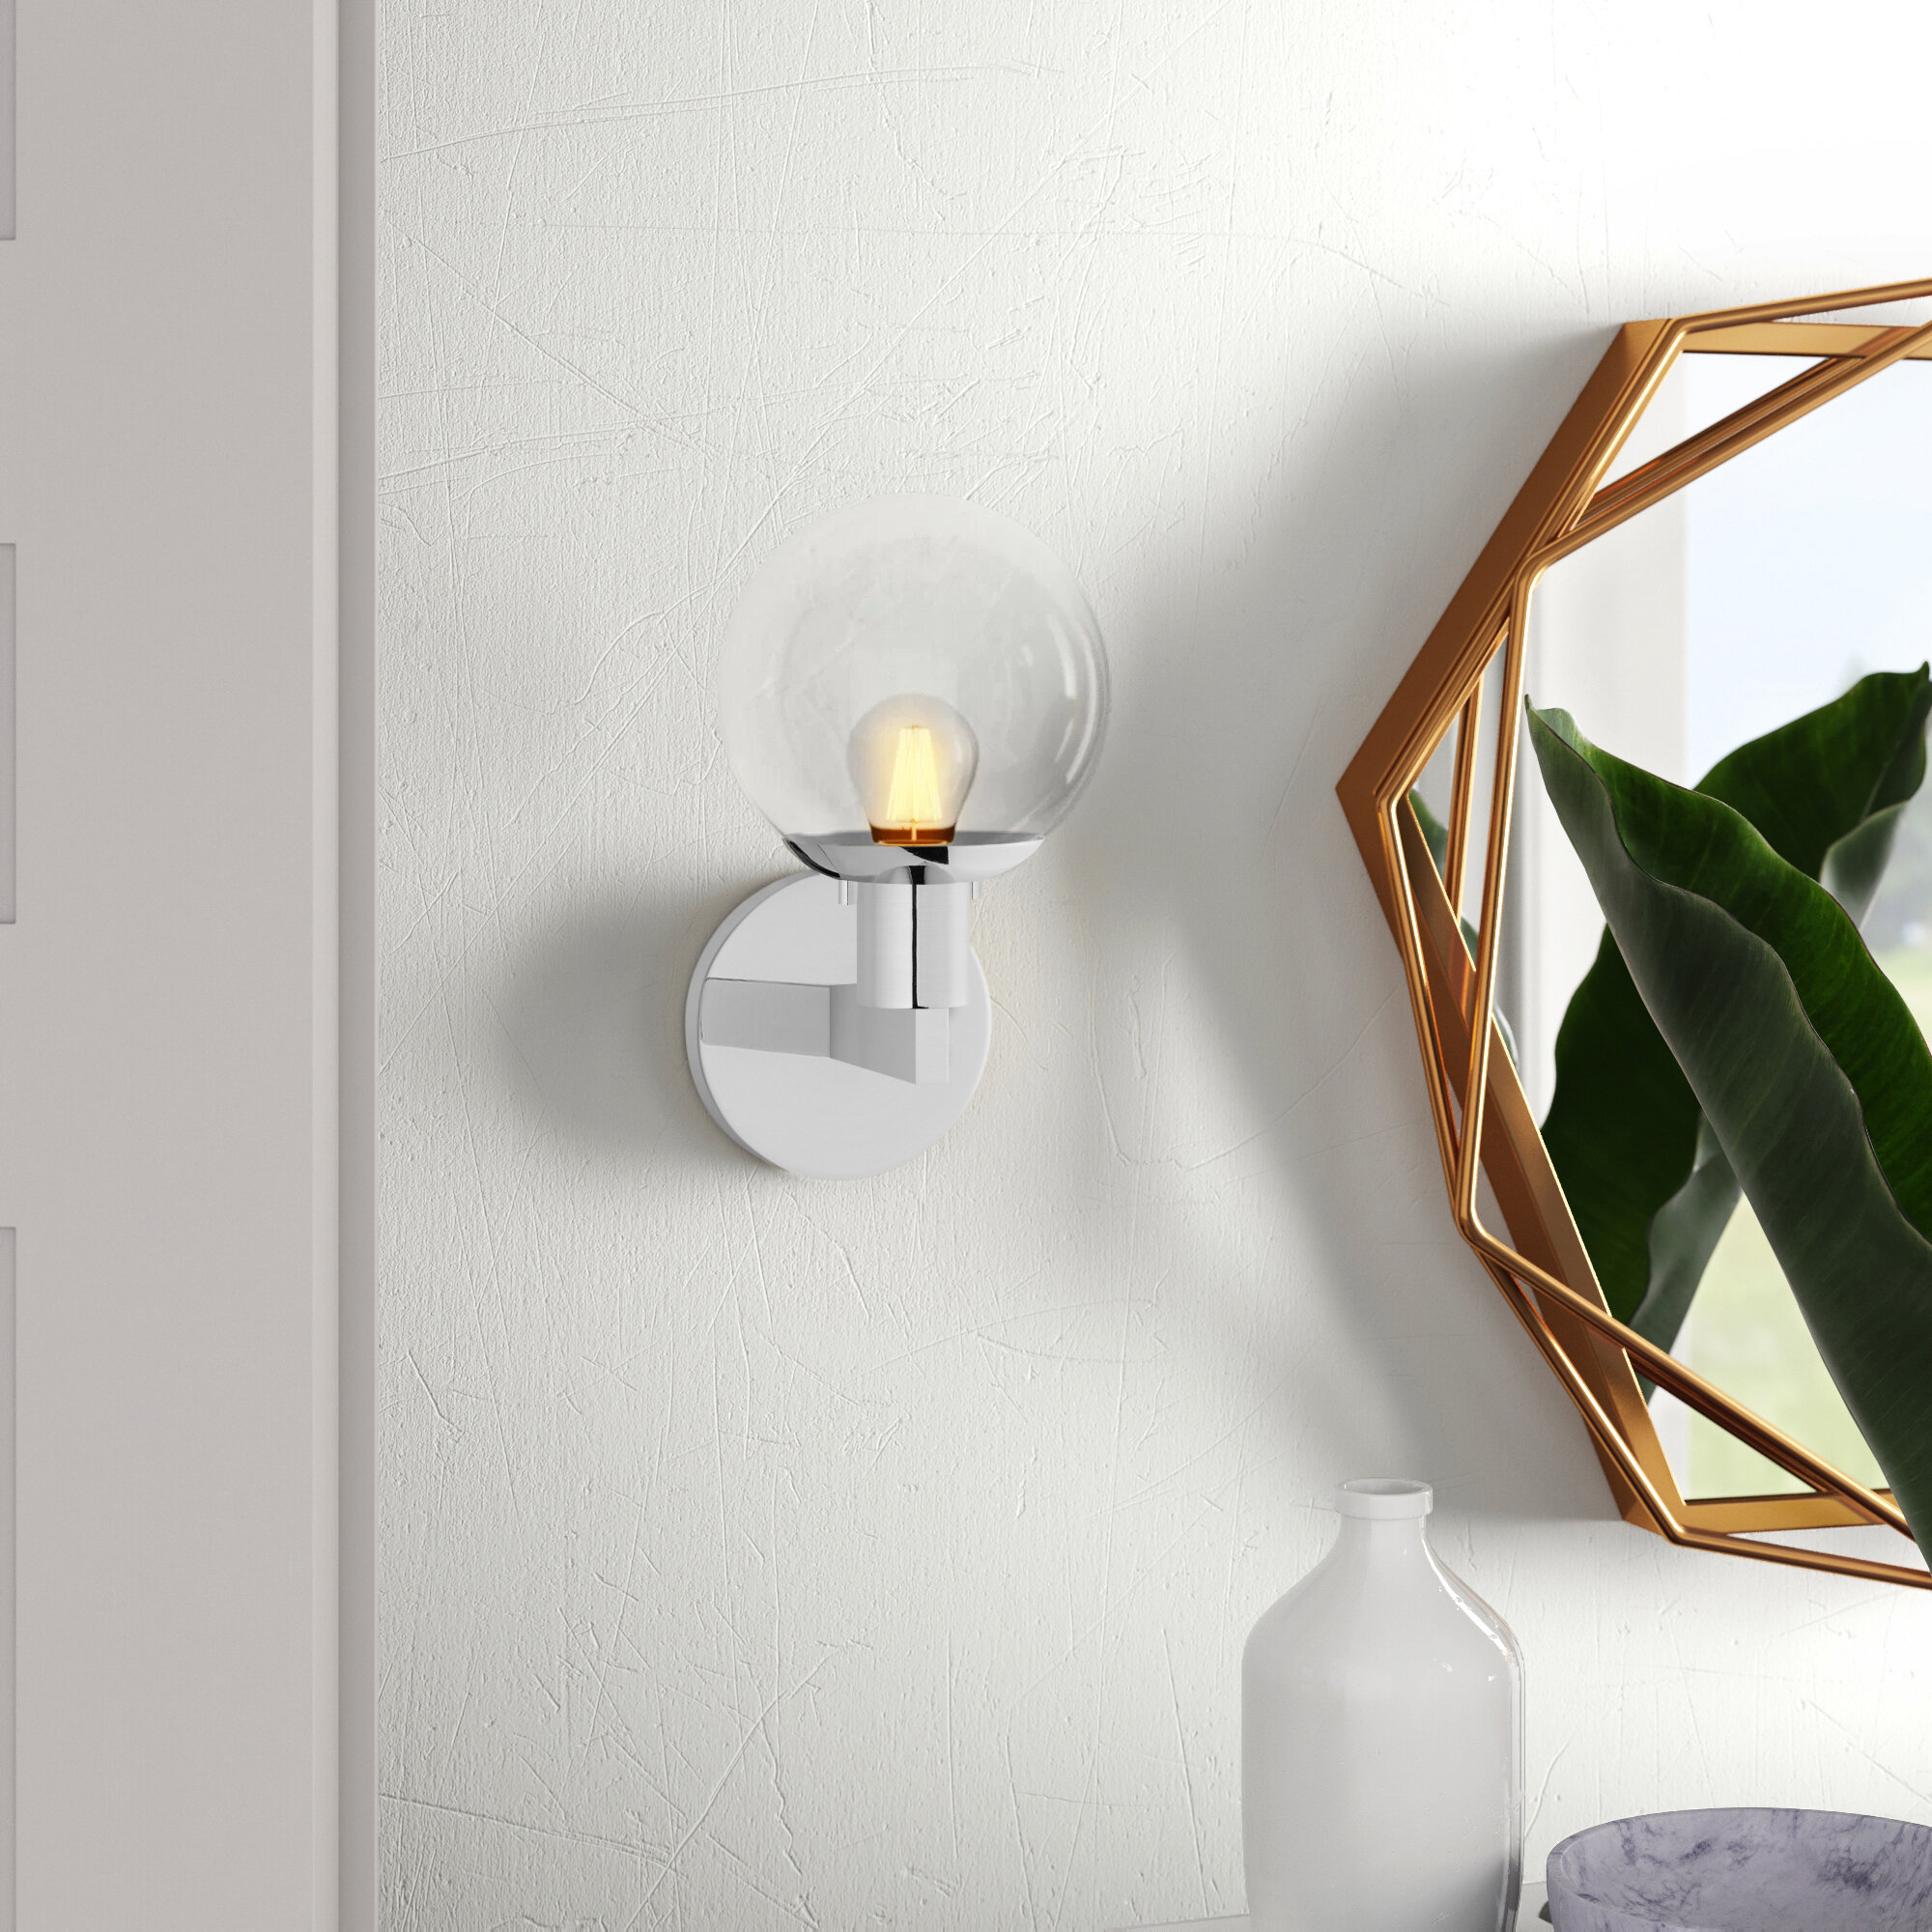 Polished Chrome Wall Sconces You Ll Love In 2021 Wayfair